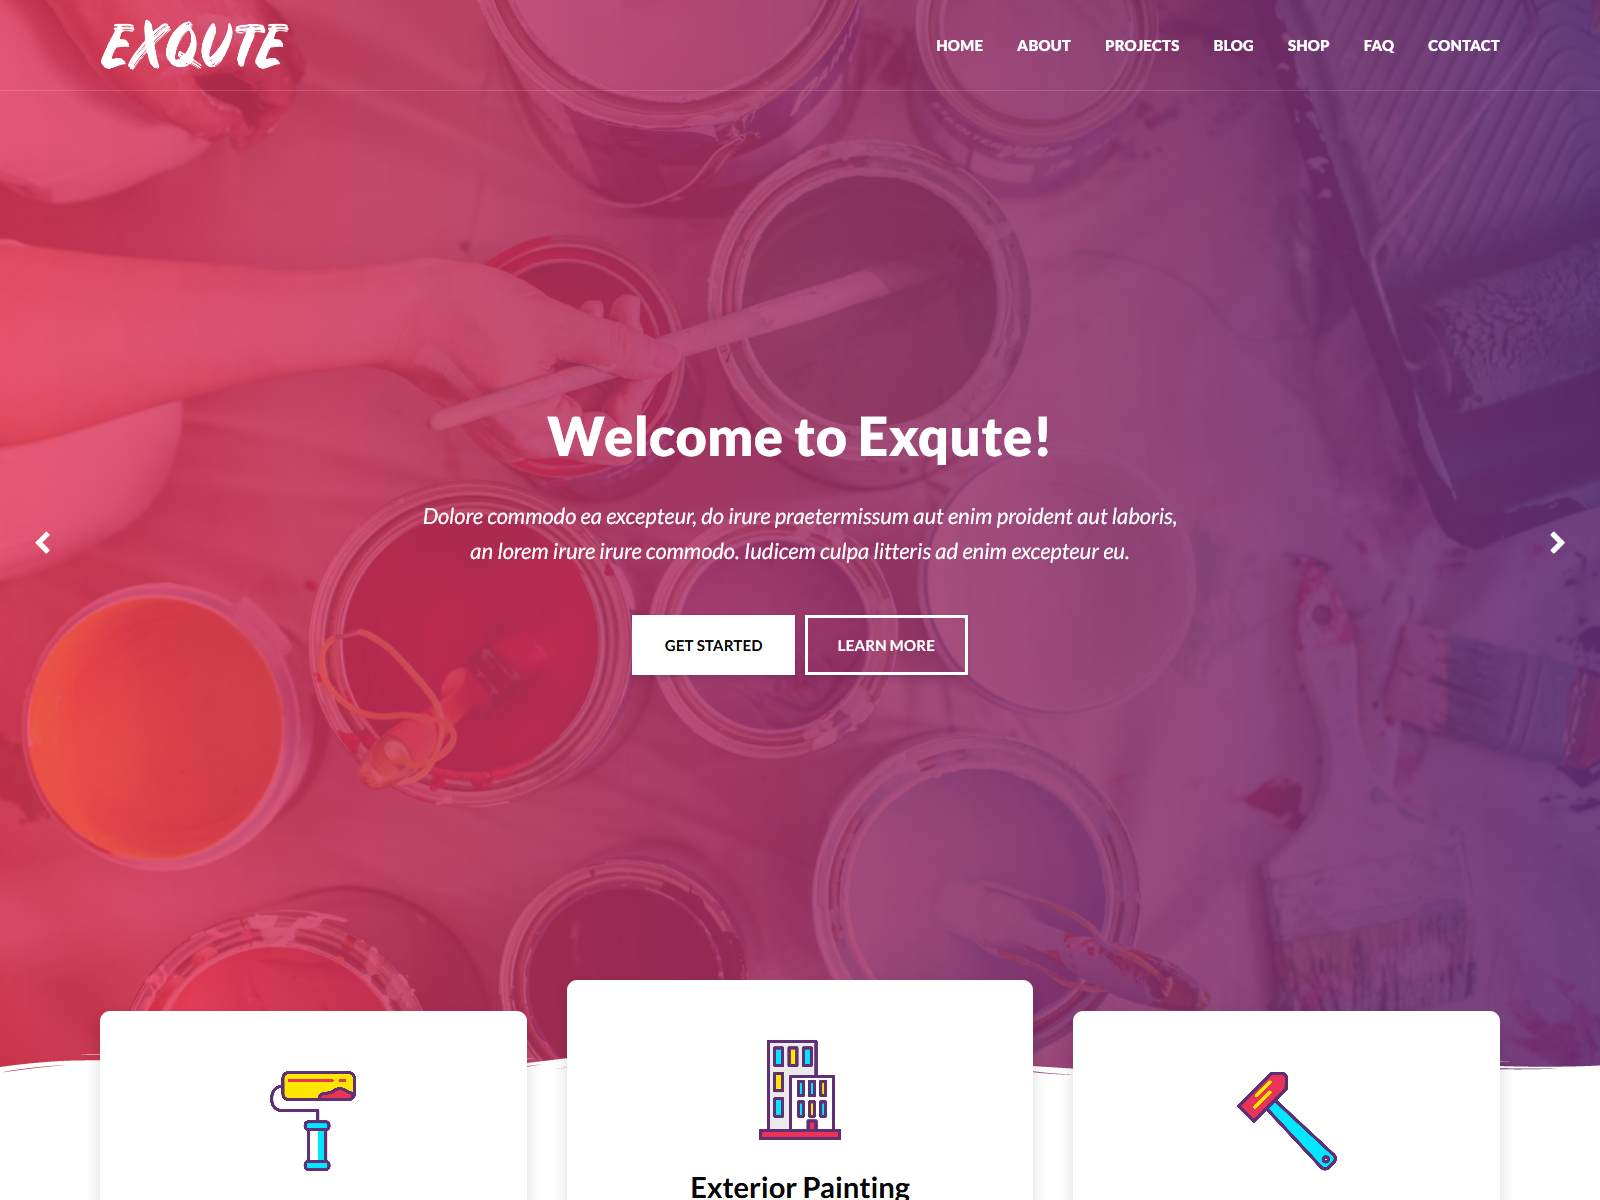 Exqute - Painting Company WordPress Theme